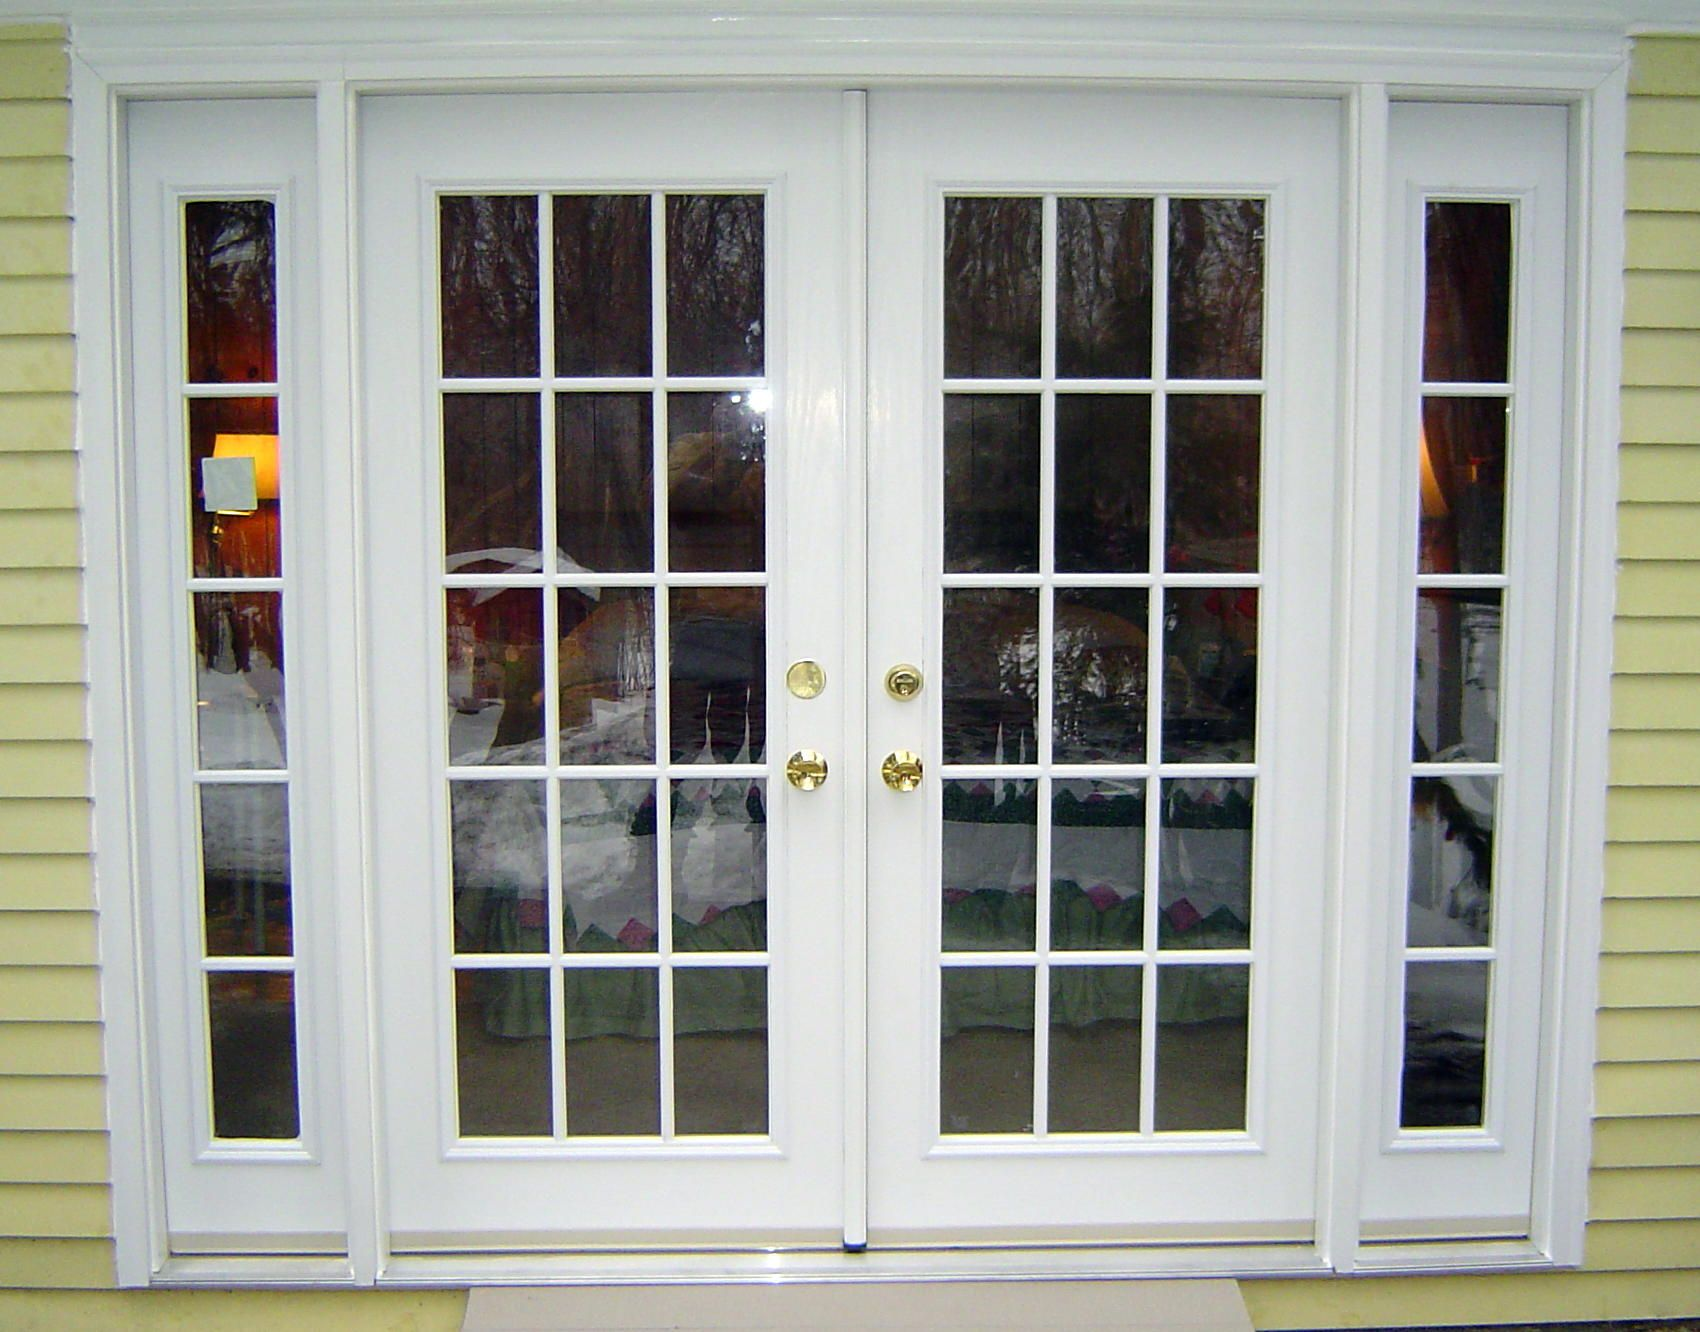 Replace a window with a door - Furniture White Color Exterior Wood Double French Doors With Sidelights For Rustic House Design With Light Yellow Wood Wall Painted Exterior Color Decor